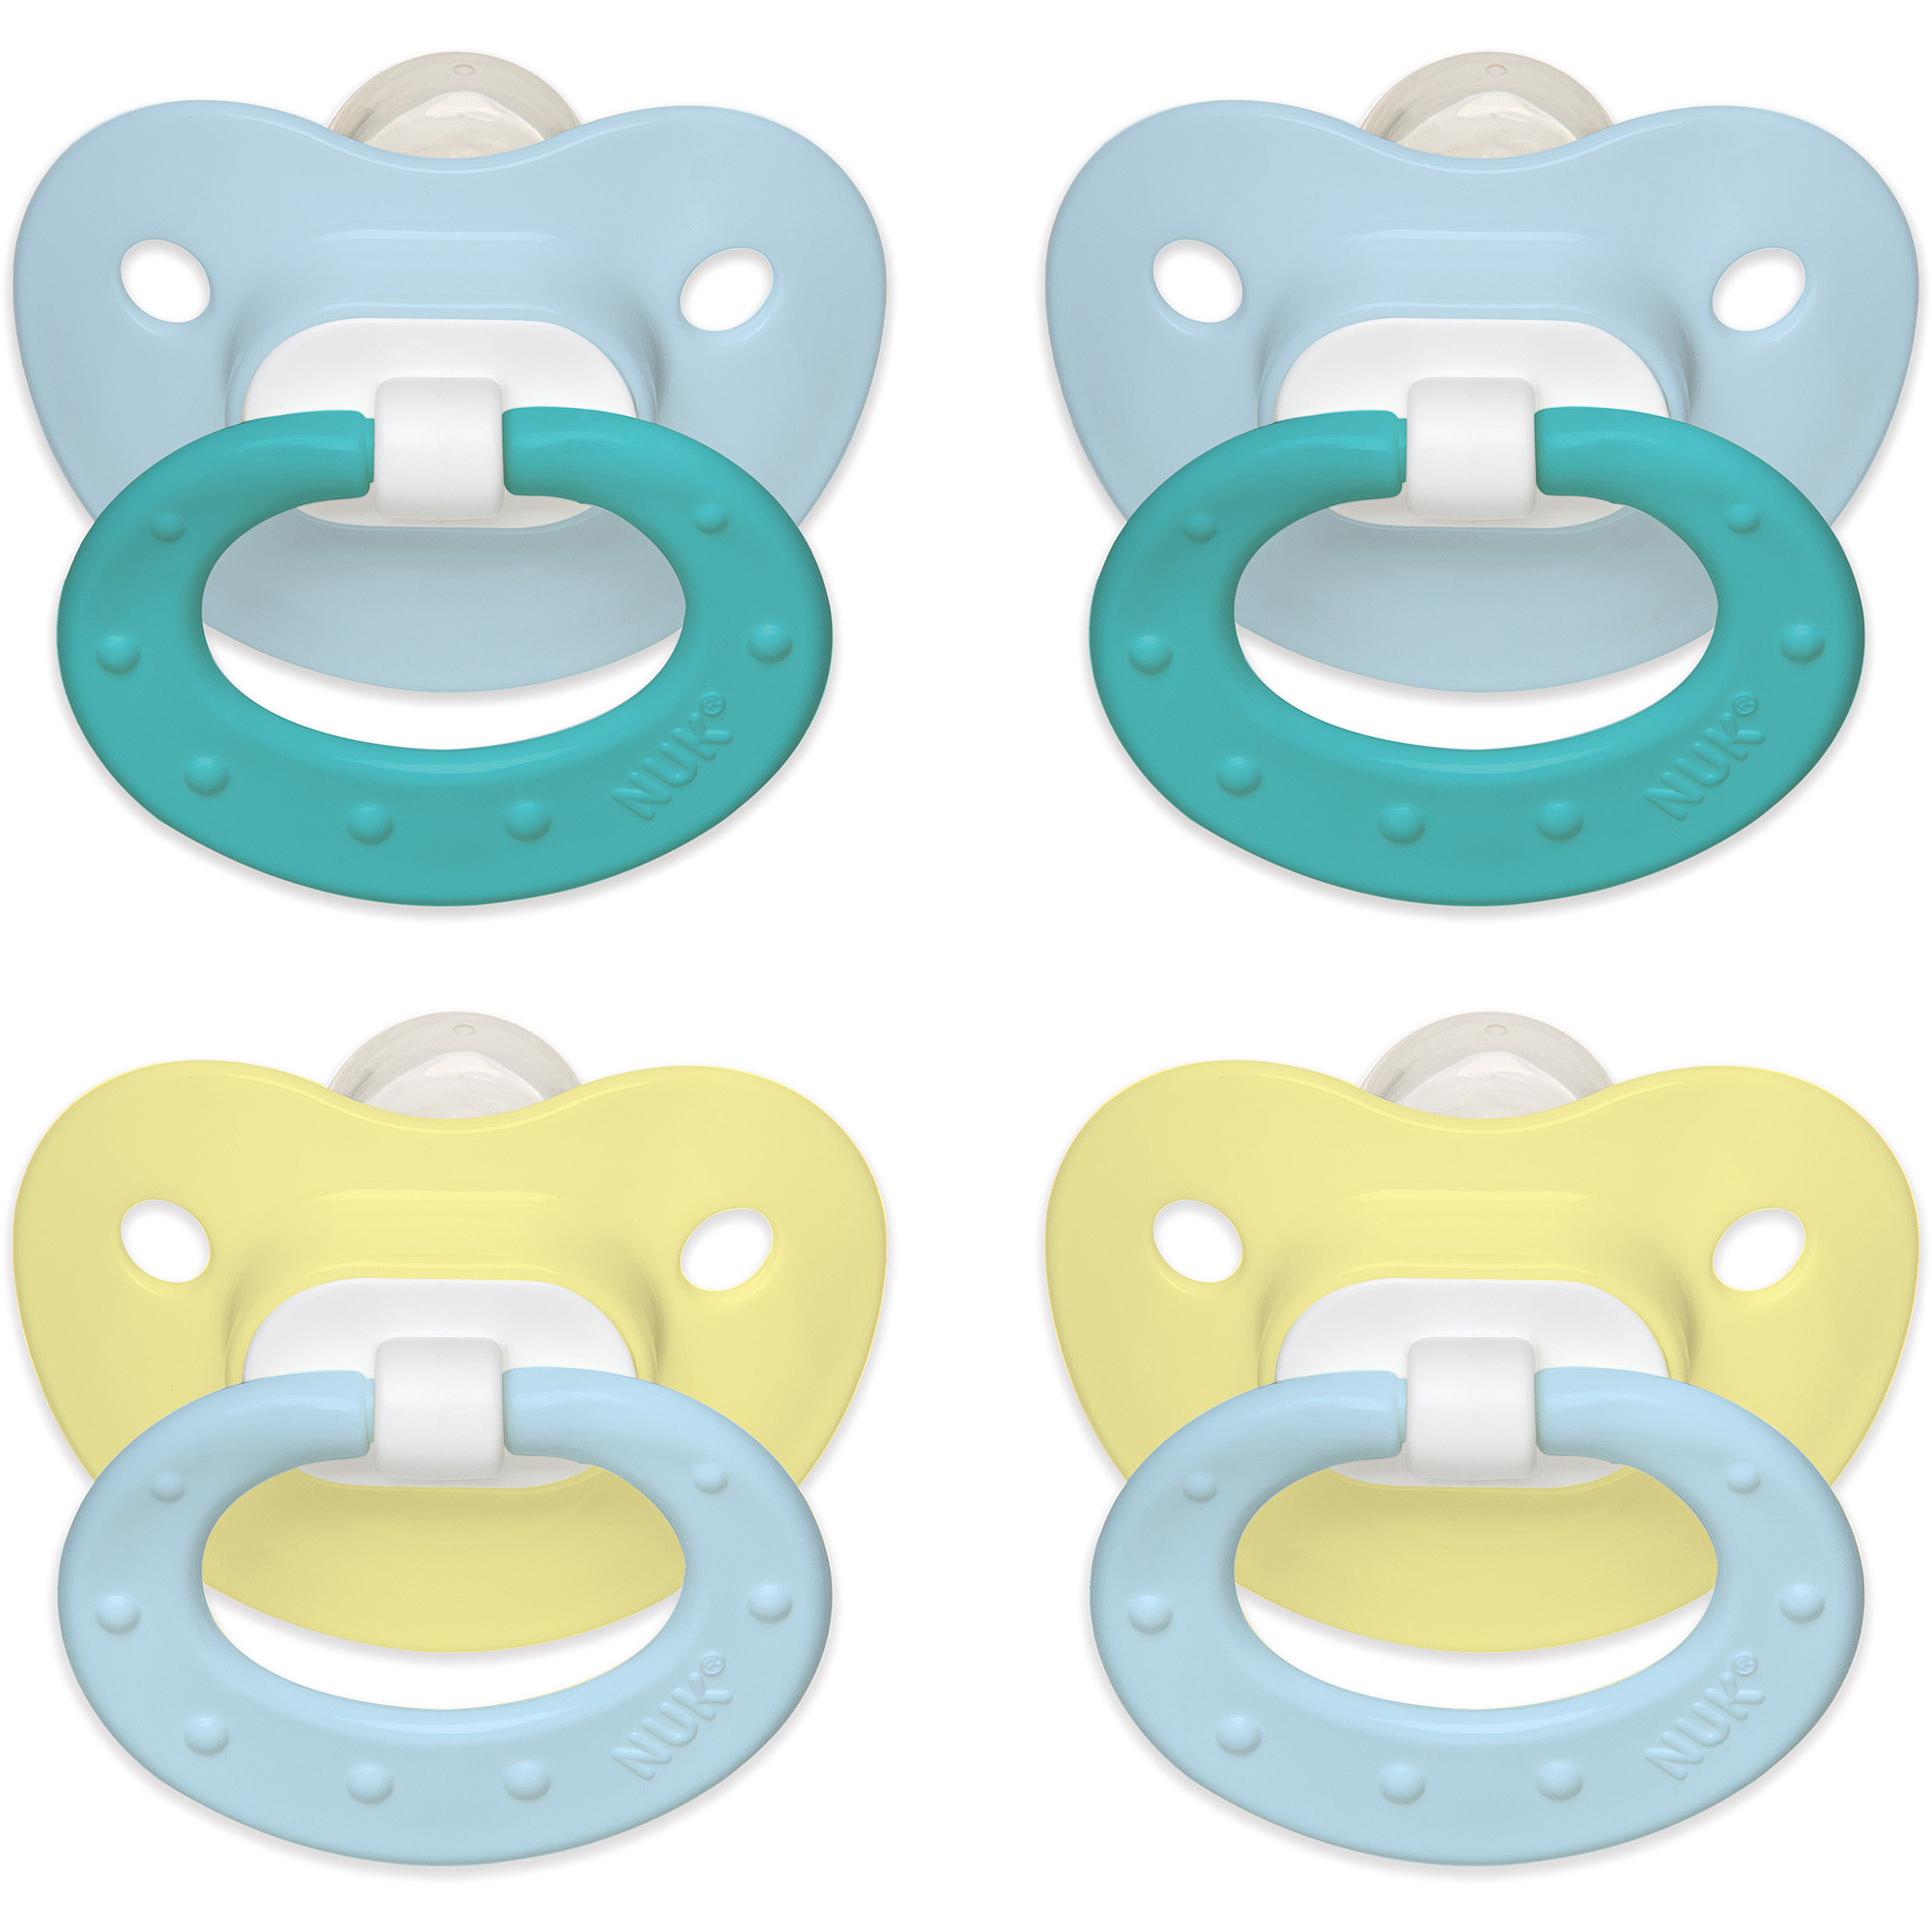 NUK Juicy Orthodontic Pacifiers, Set of 4, Size 1, Boy